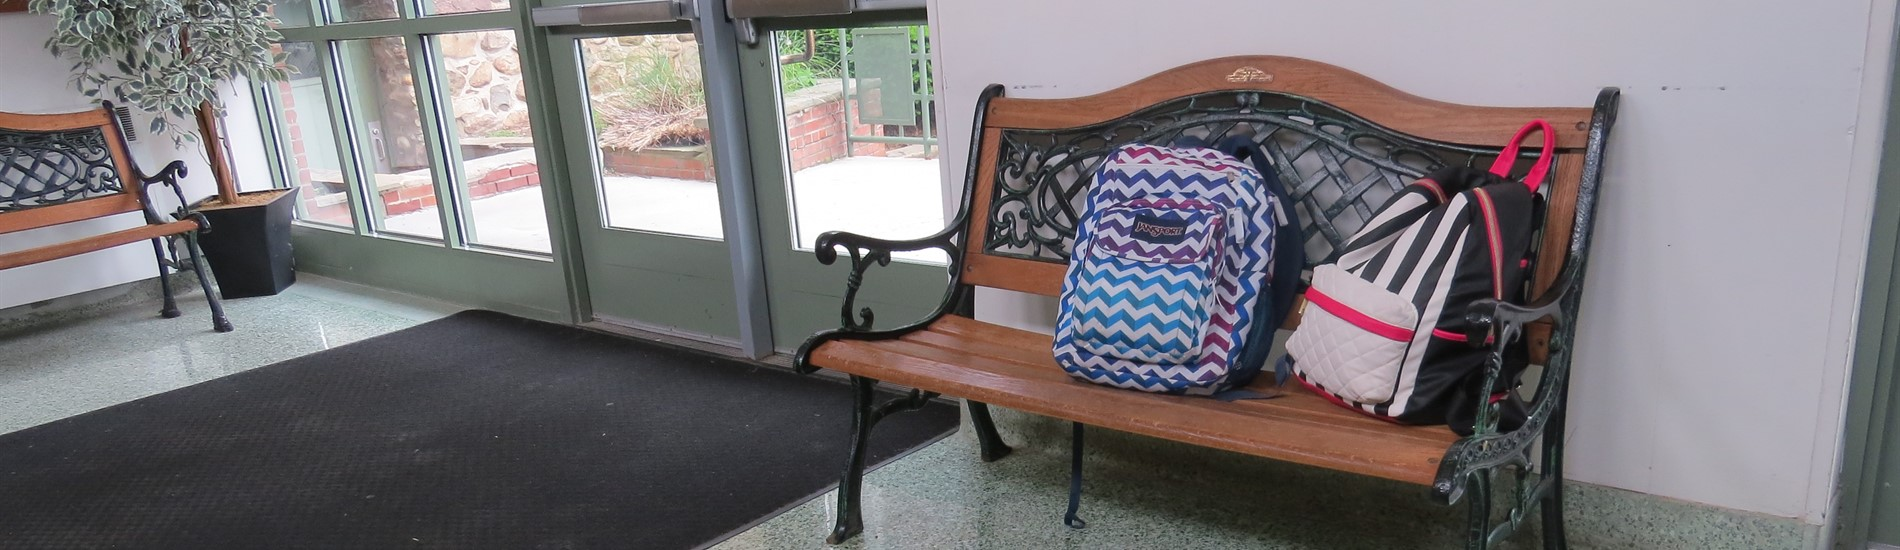 backpacks on bench in WCMS lobby